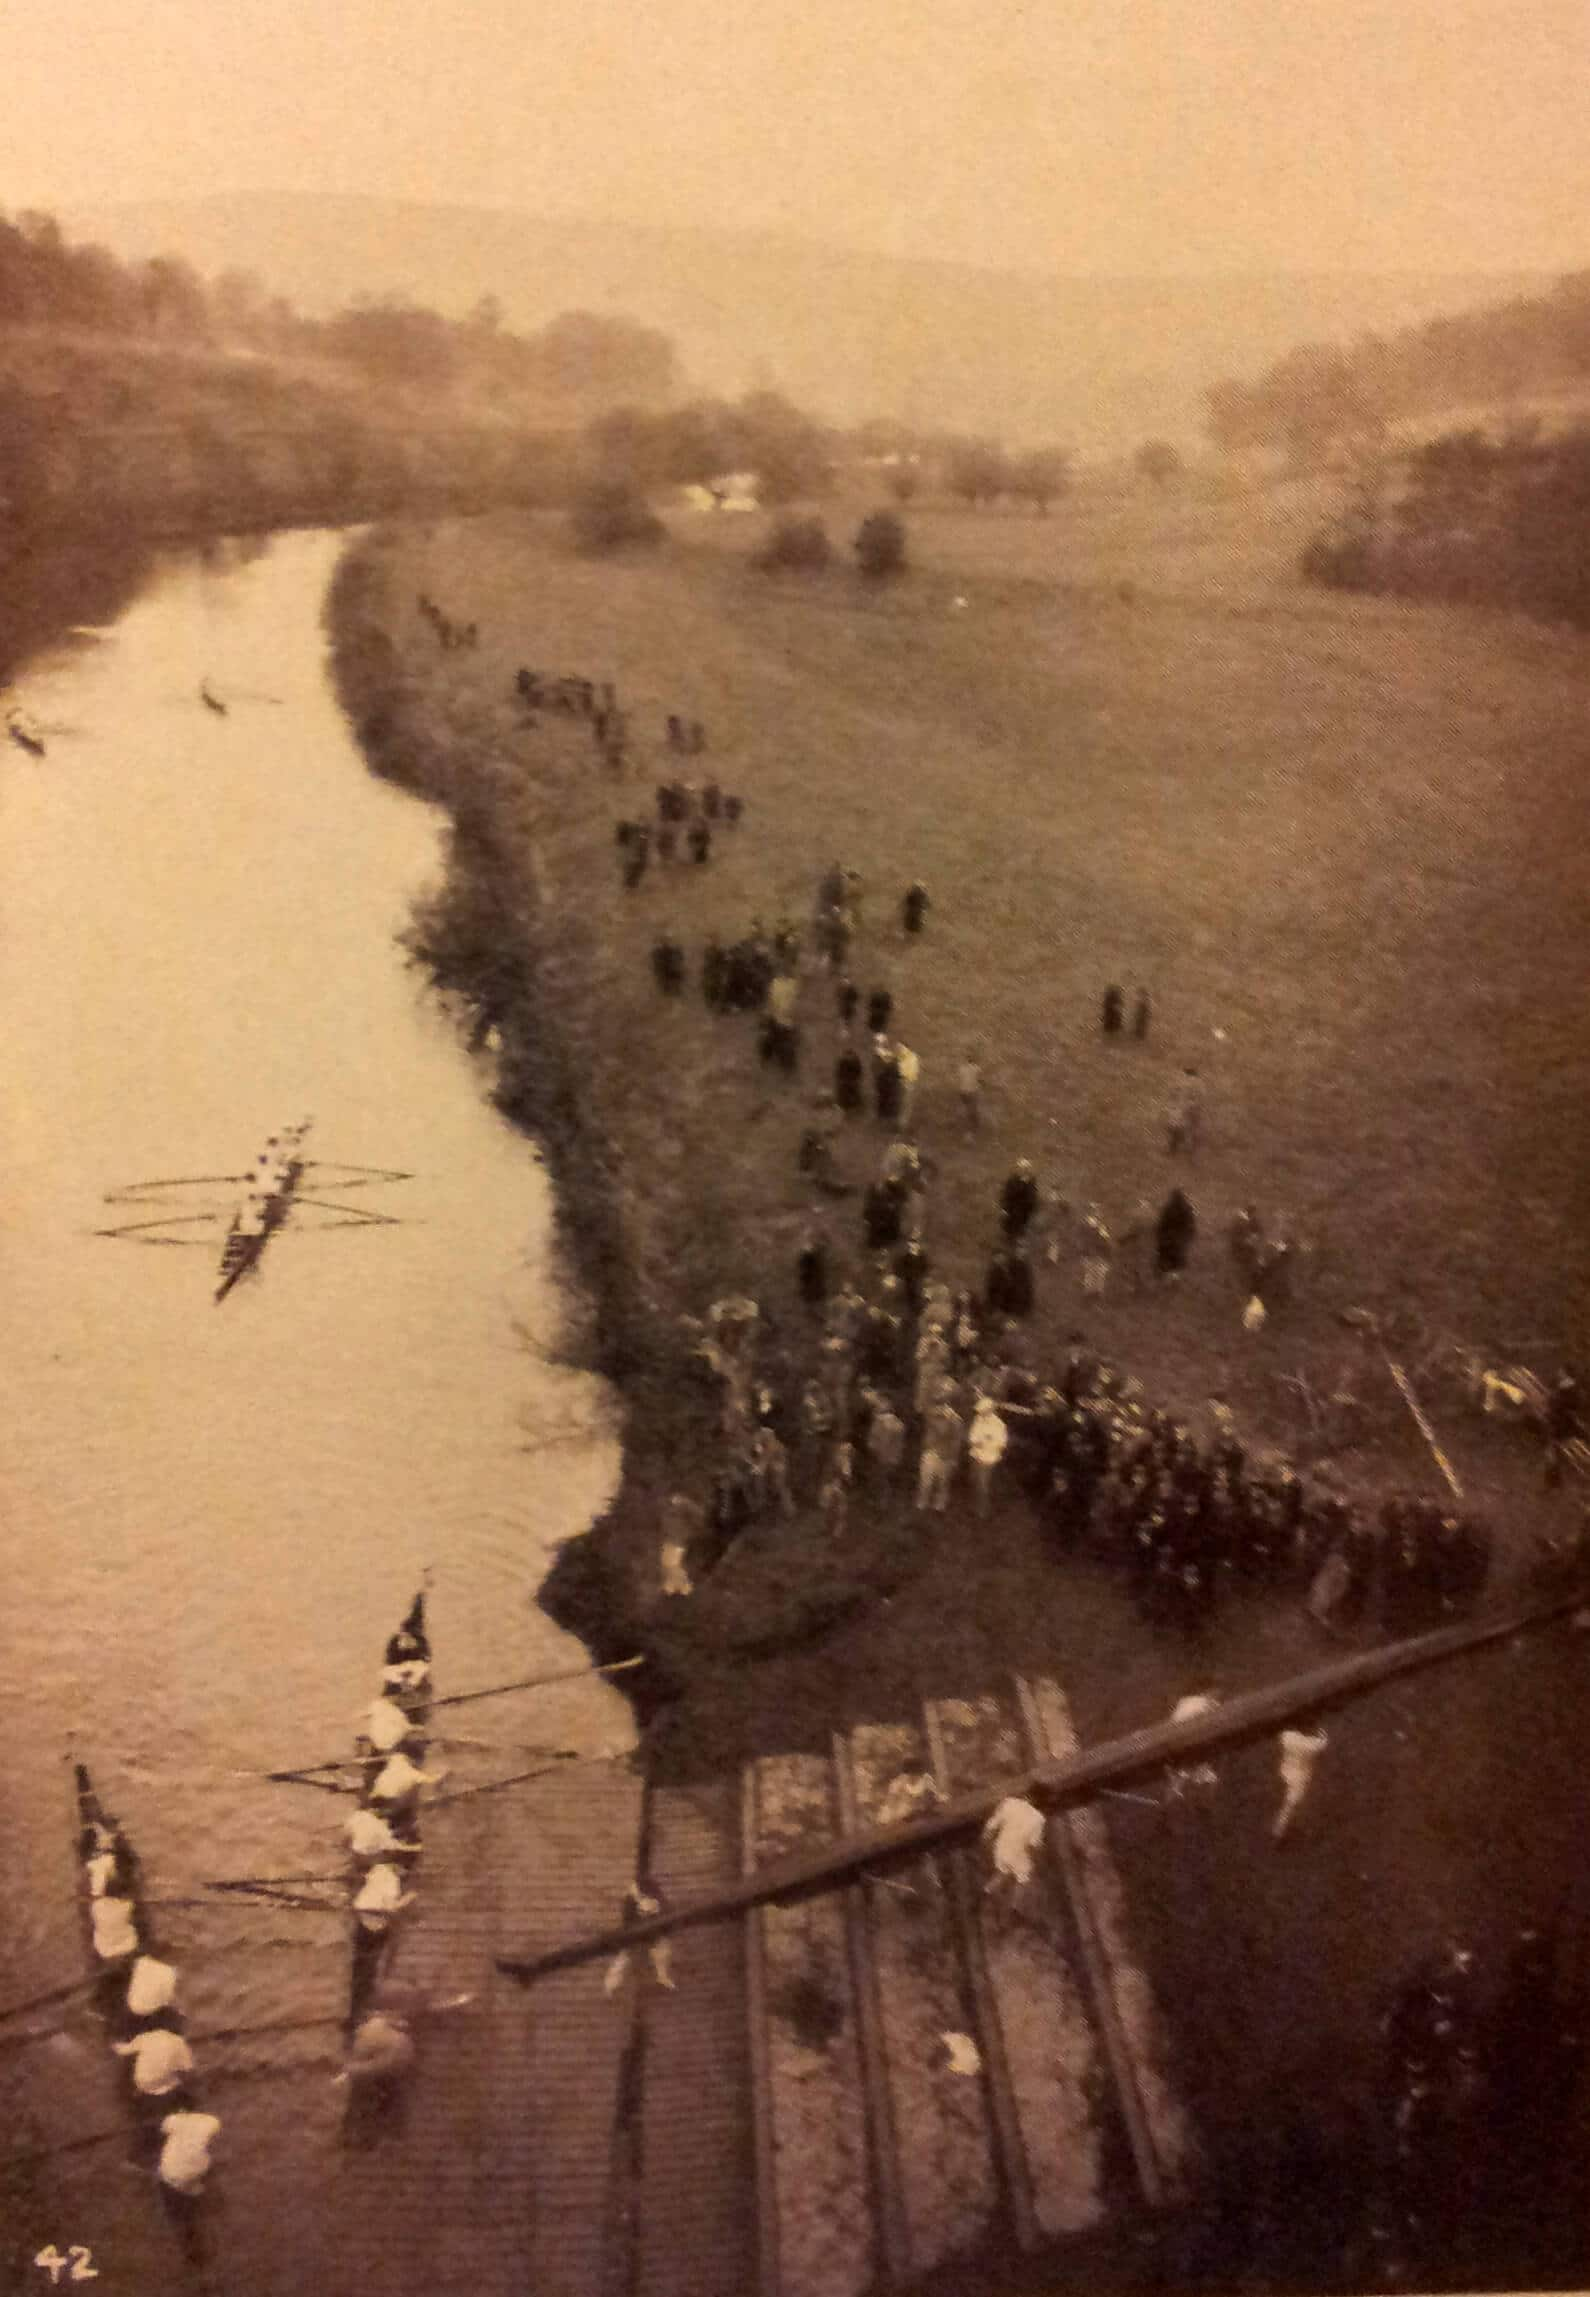 Monkton Combe school rowing about 1930